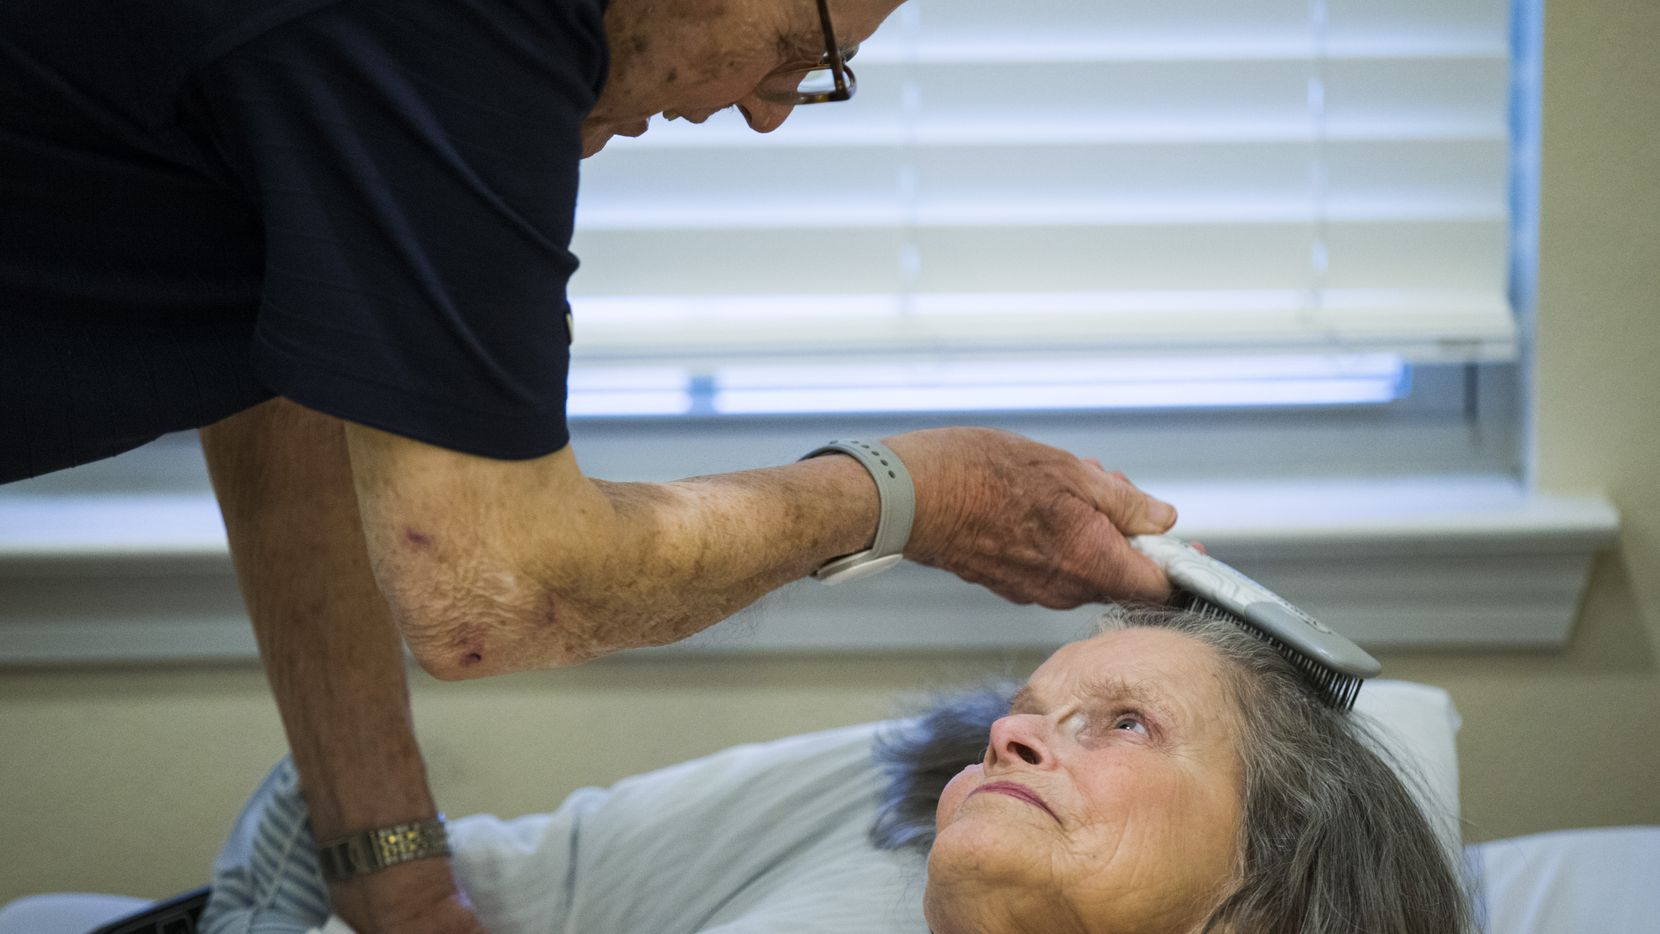 Bob Stiegler, 88, brushes his wife Norma's hair on Wednesday, Sept. 5, 2018 at Silverado Plano Memory Care Community. He lives nearby at The Village at Mapleshade and visits his wife of 58 years, who has Alzheimer's, every night.